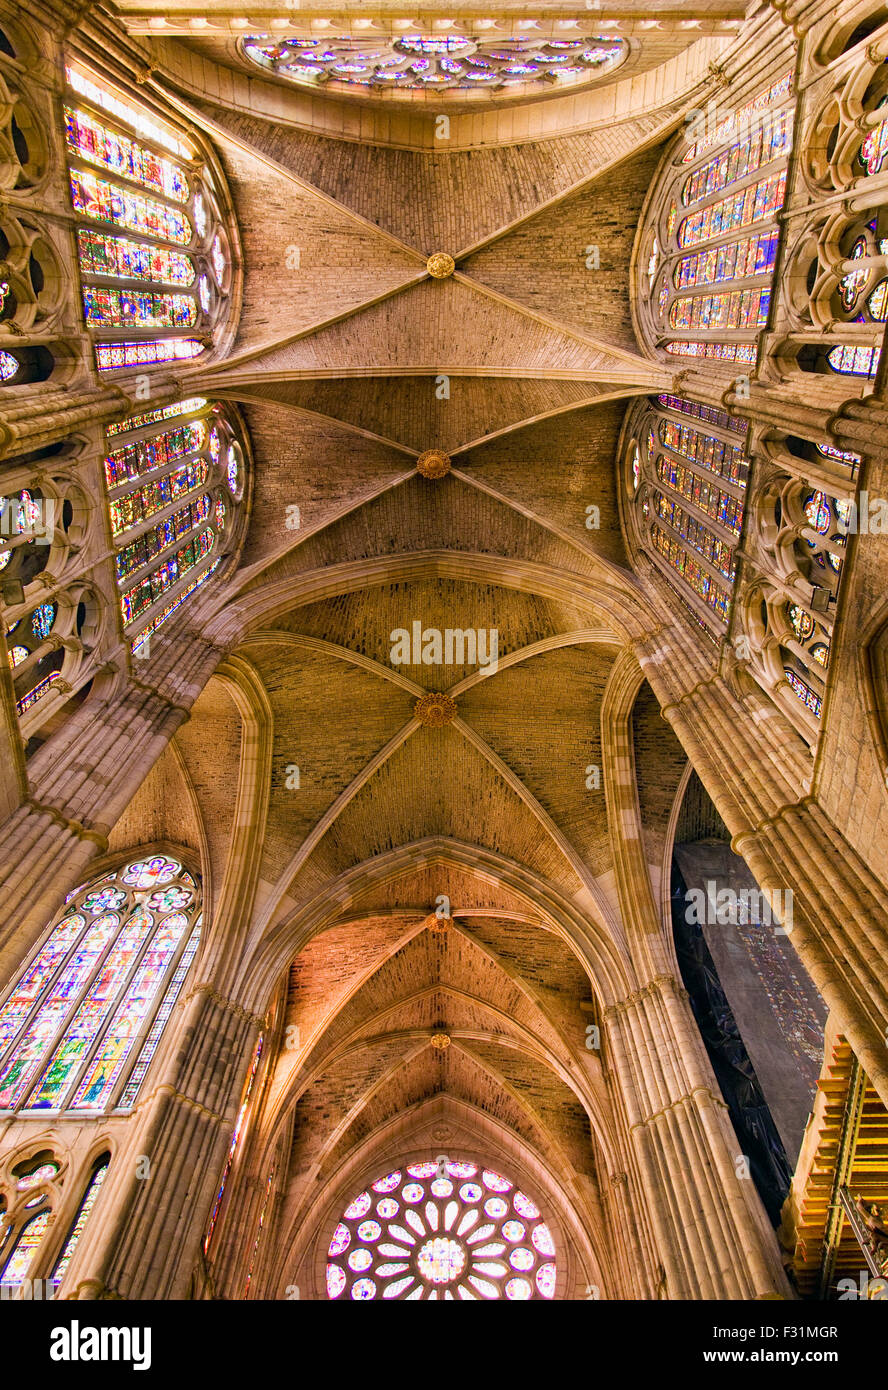 The famous interior and stained glass windows of the Leon Cathedral in Spain - Stock Image